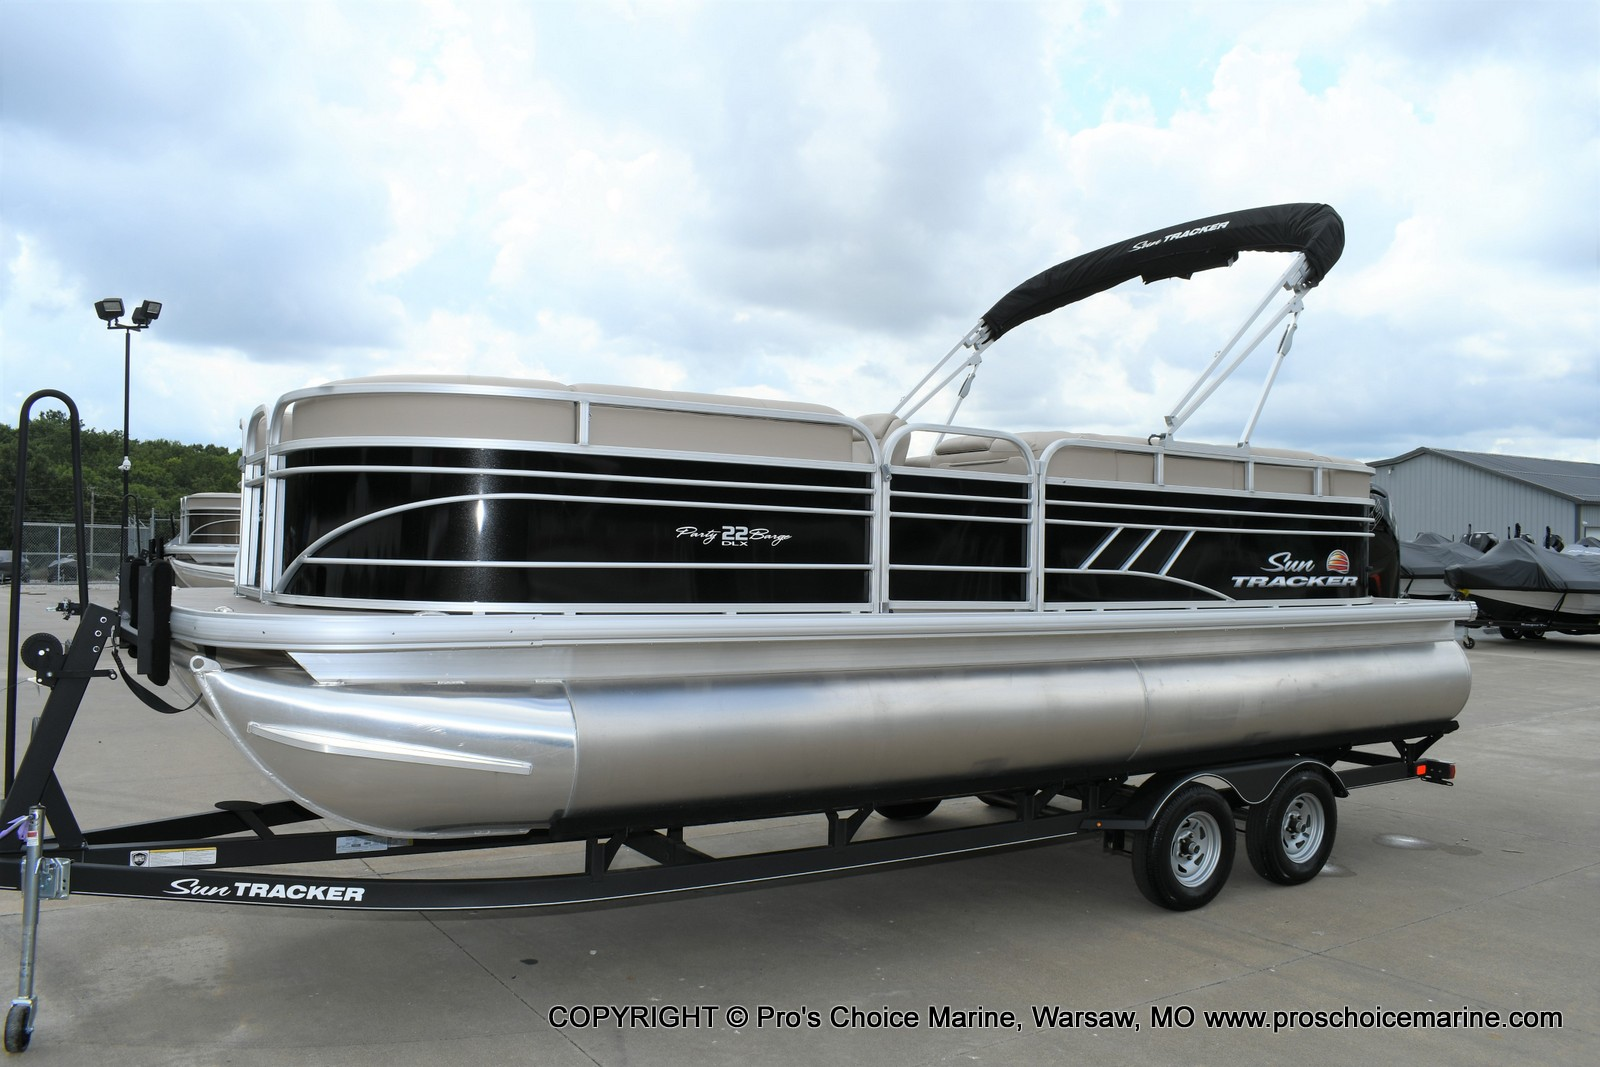 2020 Sun Tracker boat for sale, model of the boat is Party Barge 22 DLX & Image # 44 of 50